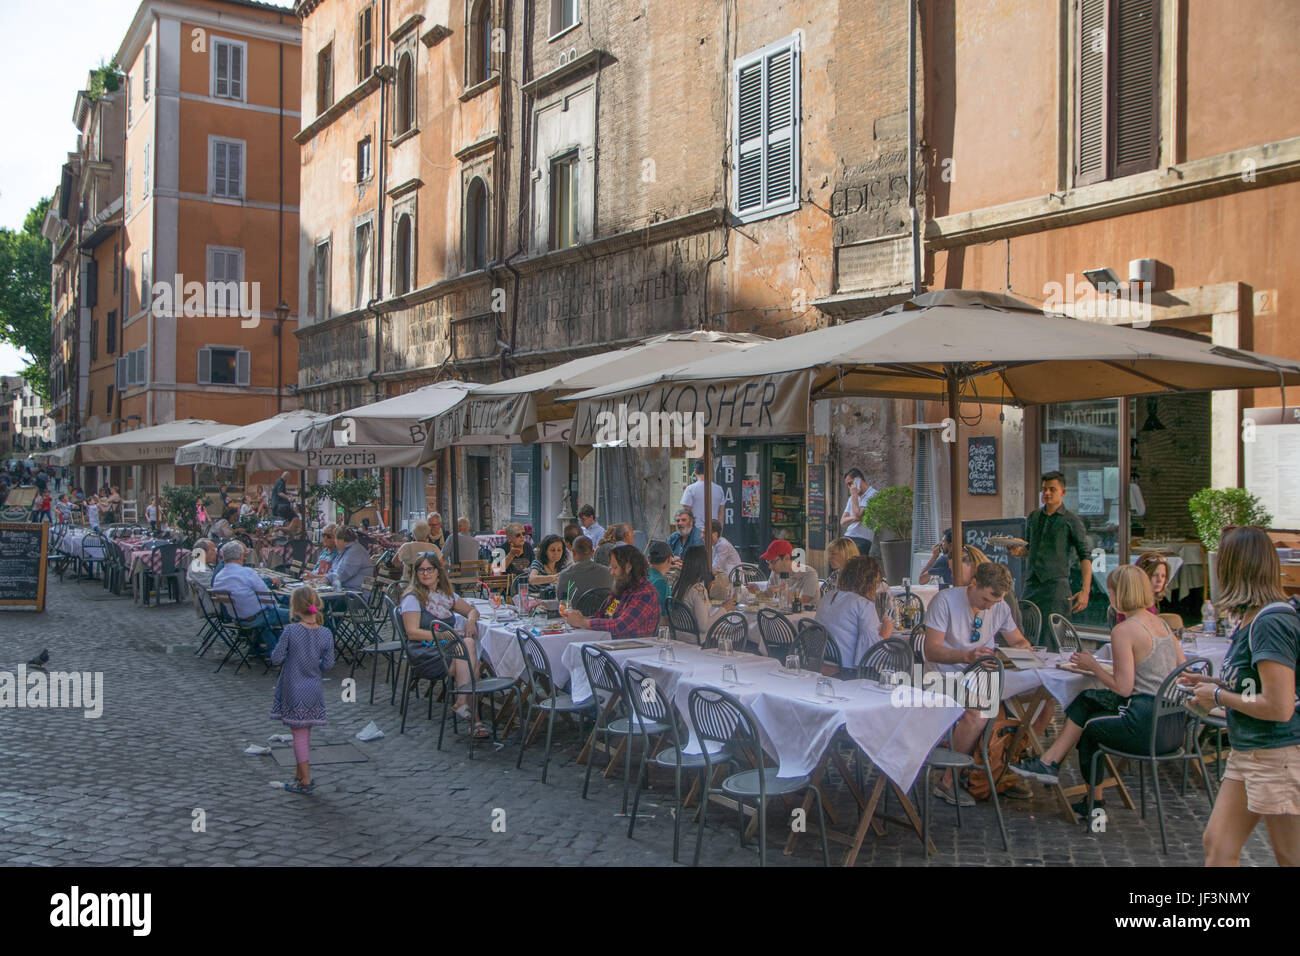 rome, italy - june 11, 2017: unidentified people eating